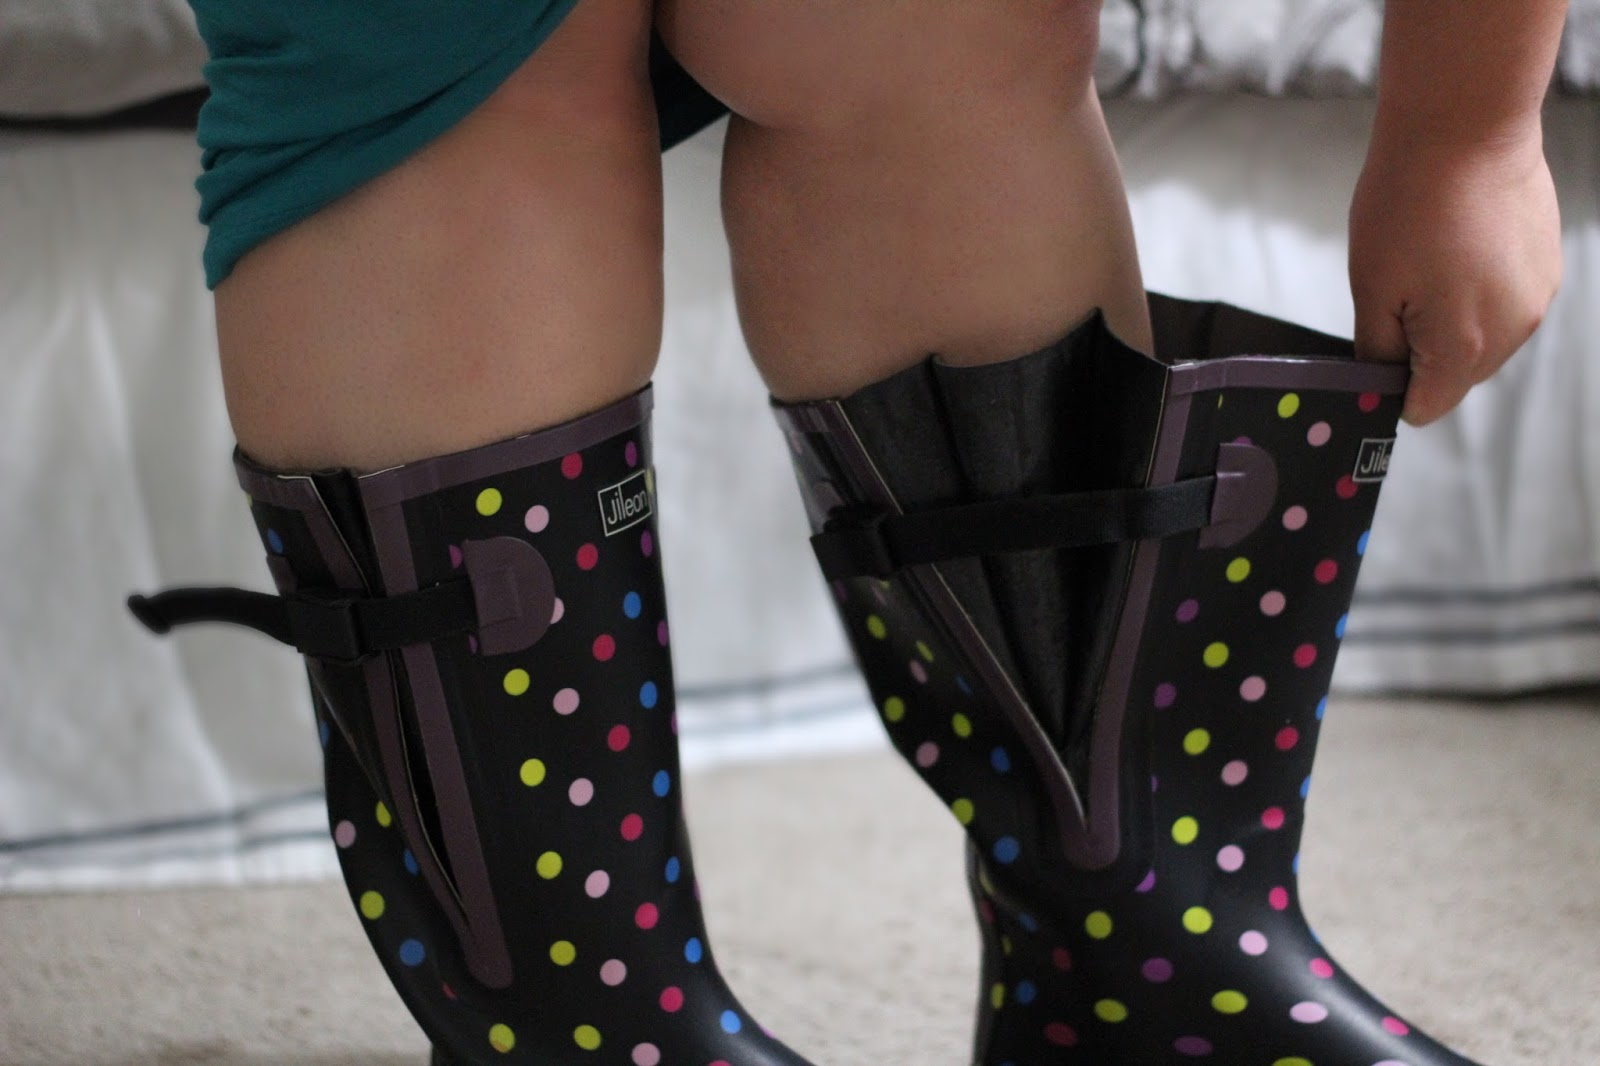 Excellent Httpforbigandheavypeoplecomtop3extrawidecalfrainbootsforplussizewomen If You Are Frustrated And Tired Of Spending Your Hard Earned Money On So Called Wide Calf Rain Boots, Only To Be Disappointed, Then You Need To